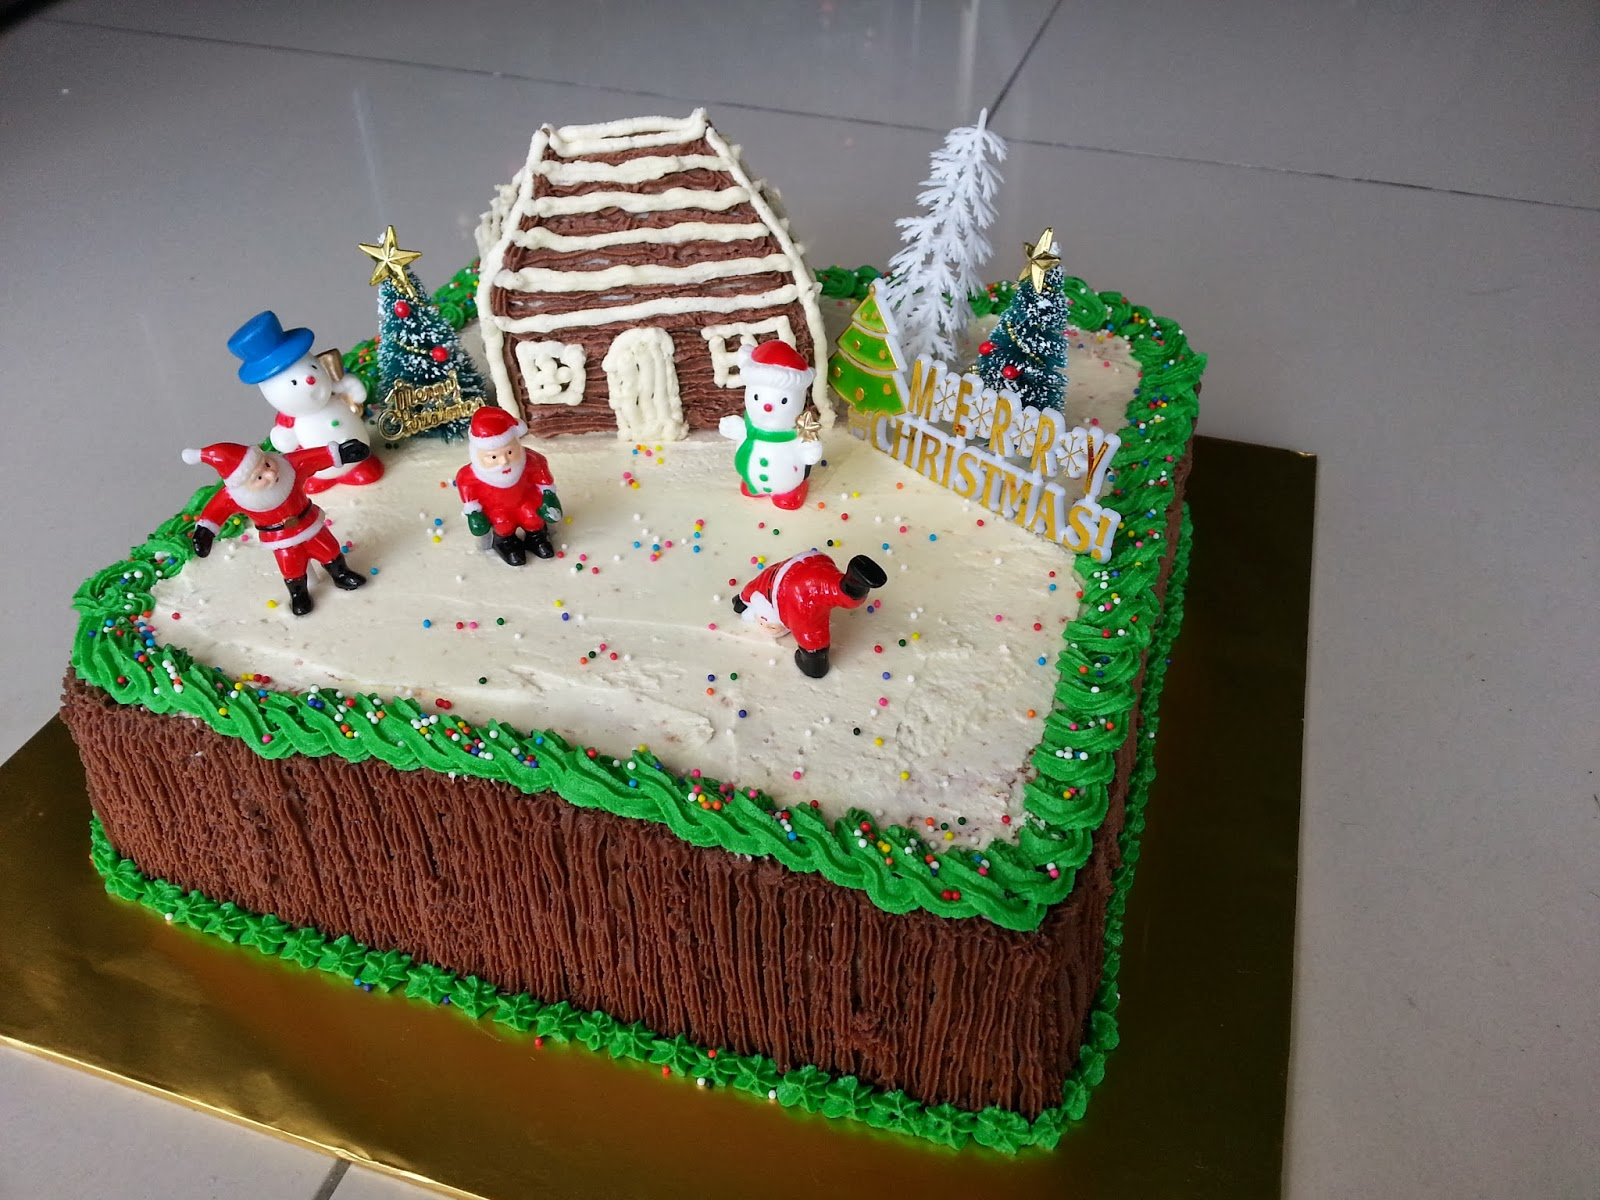 House design cake - Showstopper Of The Day Christmas House Cake